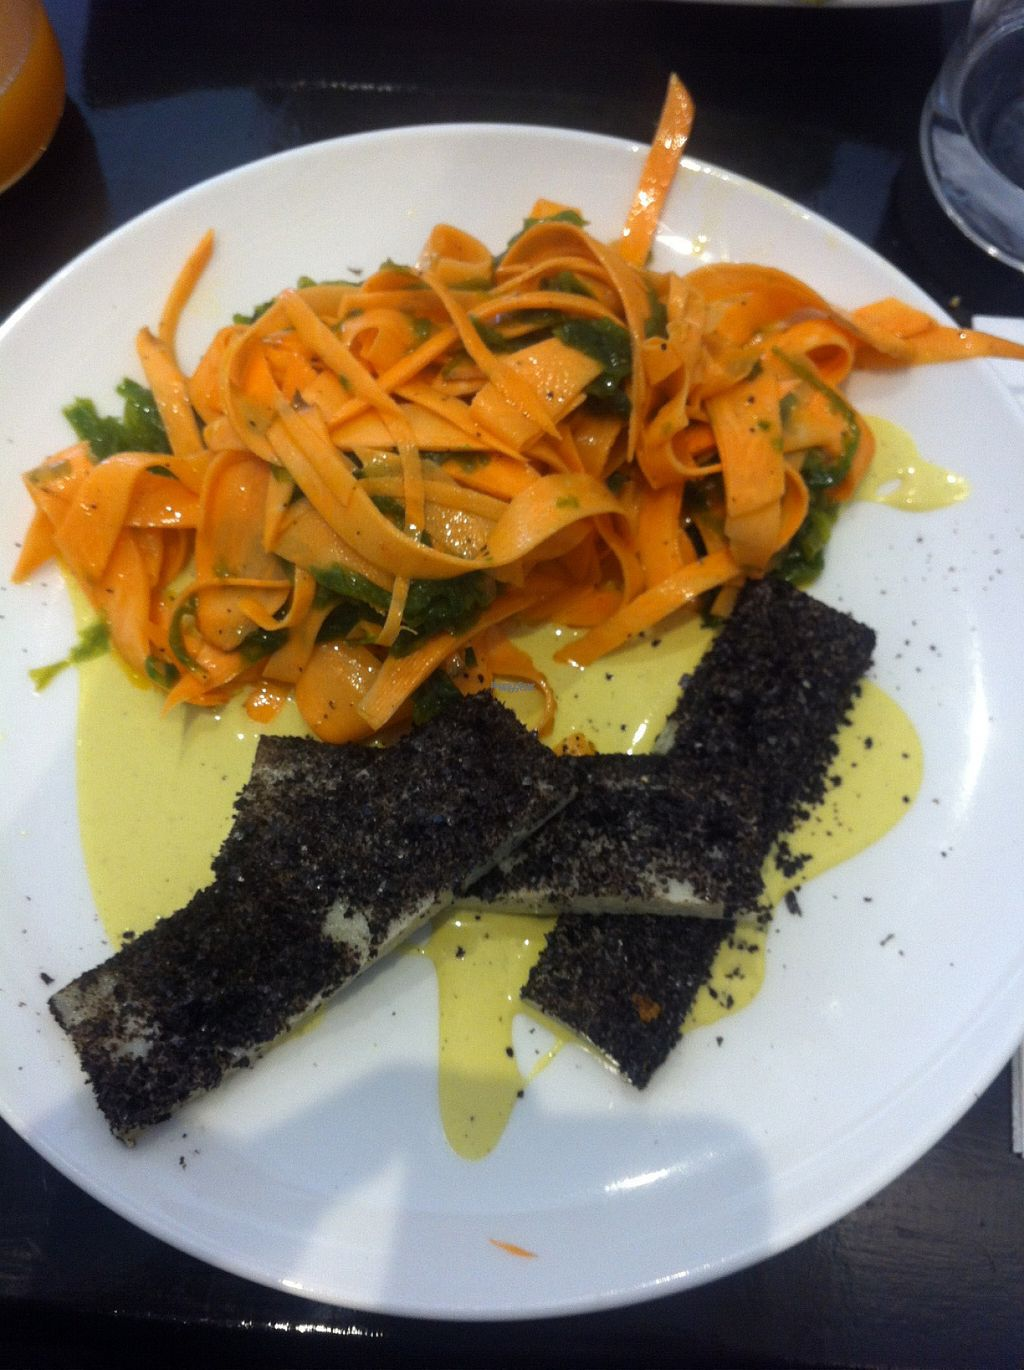 """Photo of 42 Degres  by <a href=""""/members/profile/piffelina"""">piffelina</a> <br/>Main course. If you enjoy smoky taste of seaweed, you will probably really enjoy this meal <br/> August 2, 2016  - <a href='/contact/abuse/image/44057/164449'>Report</a>"""